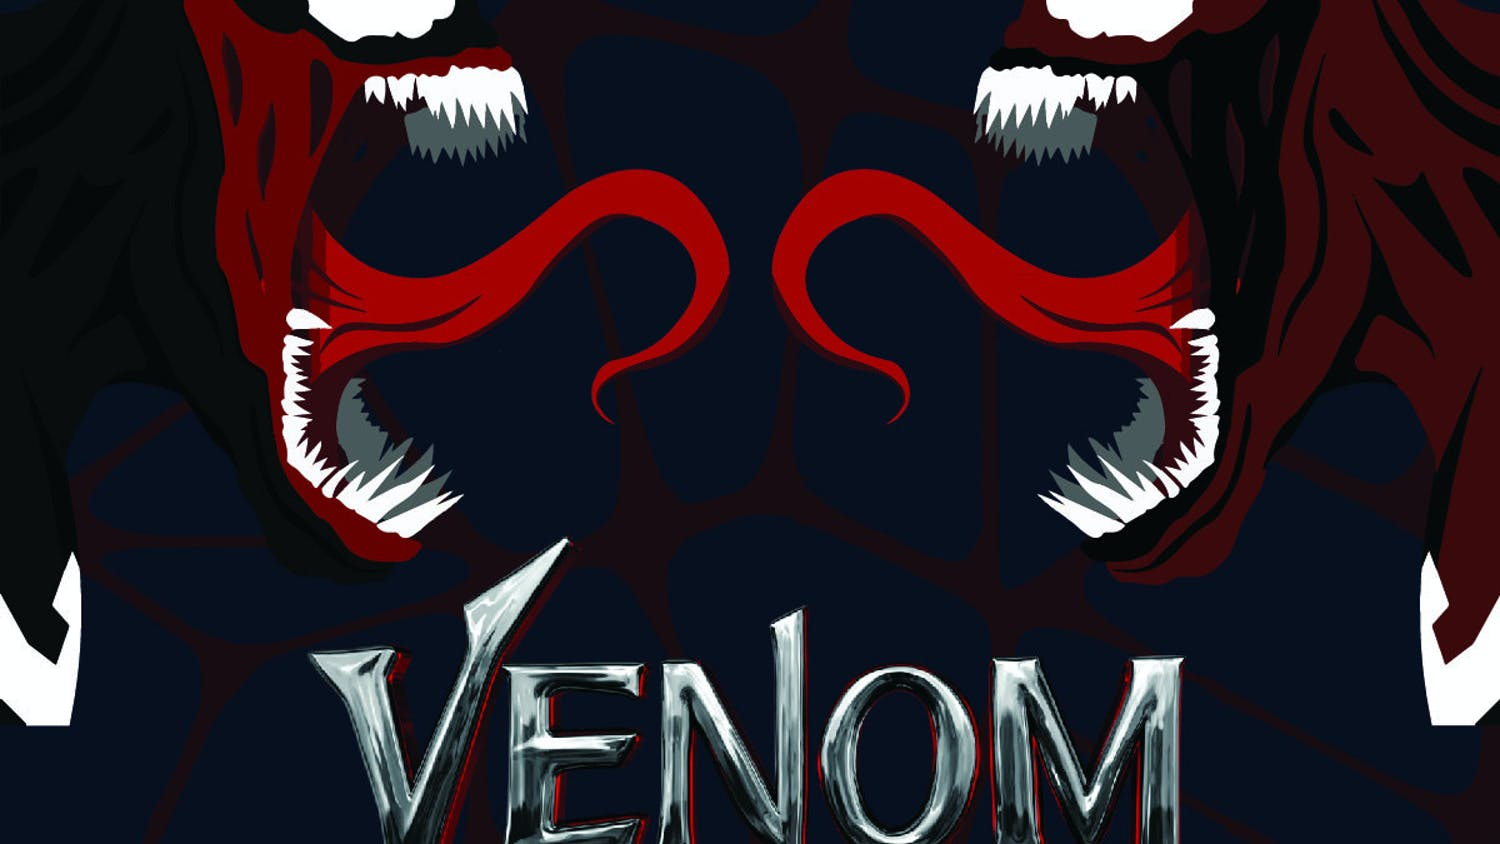 """The second of the """"Venom"""" movies, """"Venom: Let There Be Carnage,"""" was released Oct. 1."""